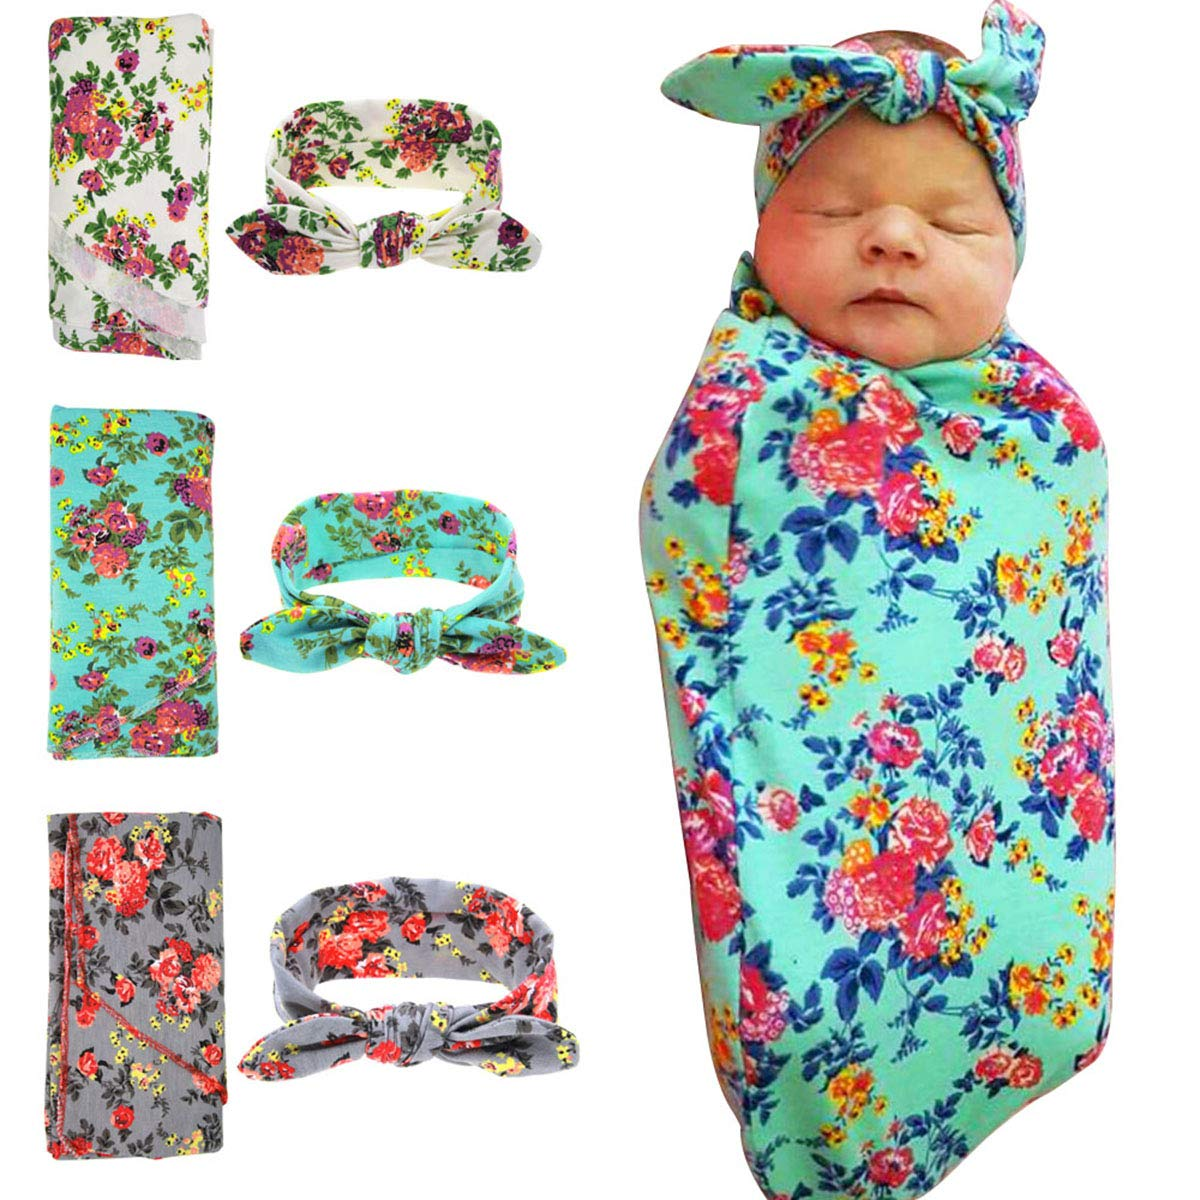 HoveBeaty Newborn Receiving Blanket Headband Set Knitted Cotton Swaddle Blankets Flower Print Baby Infants Wrapped Blankets (green)